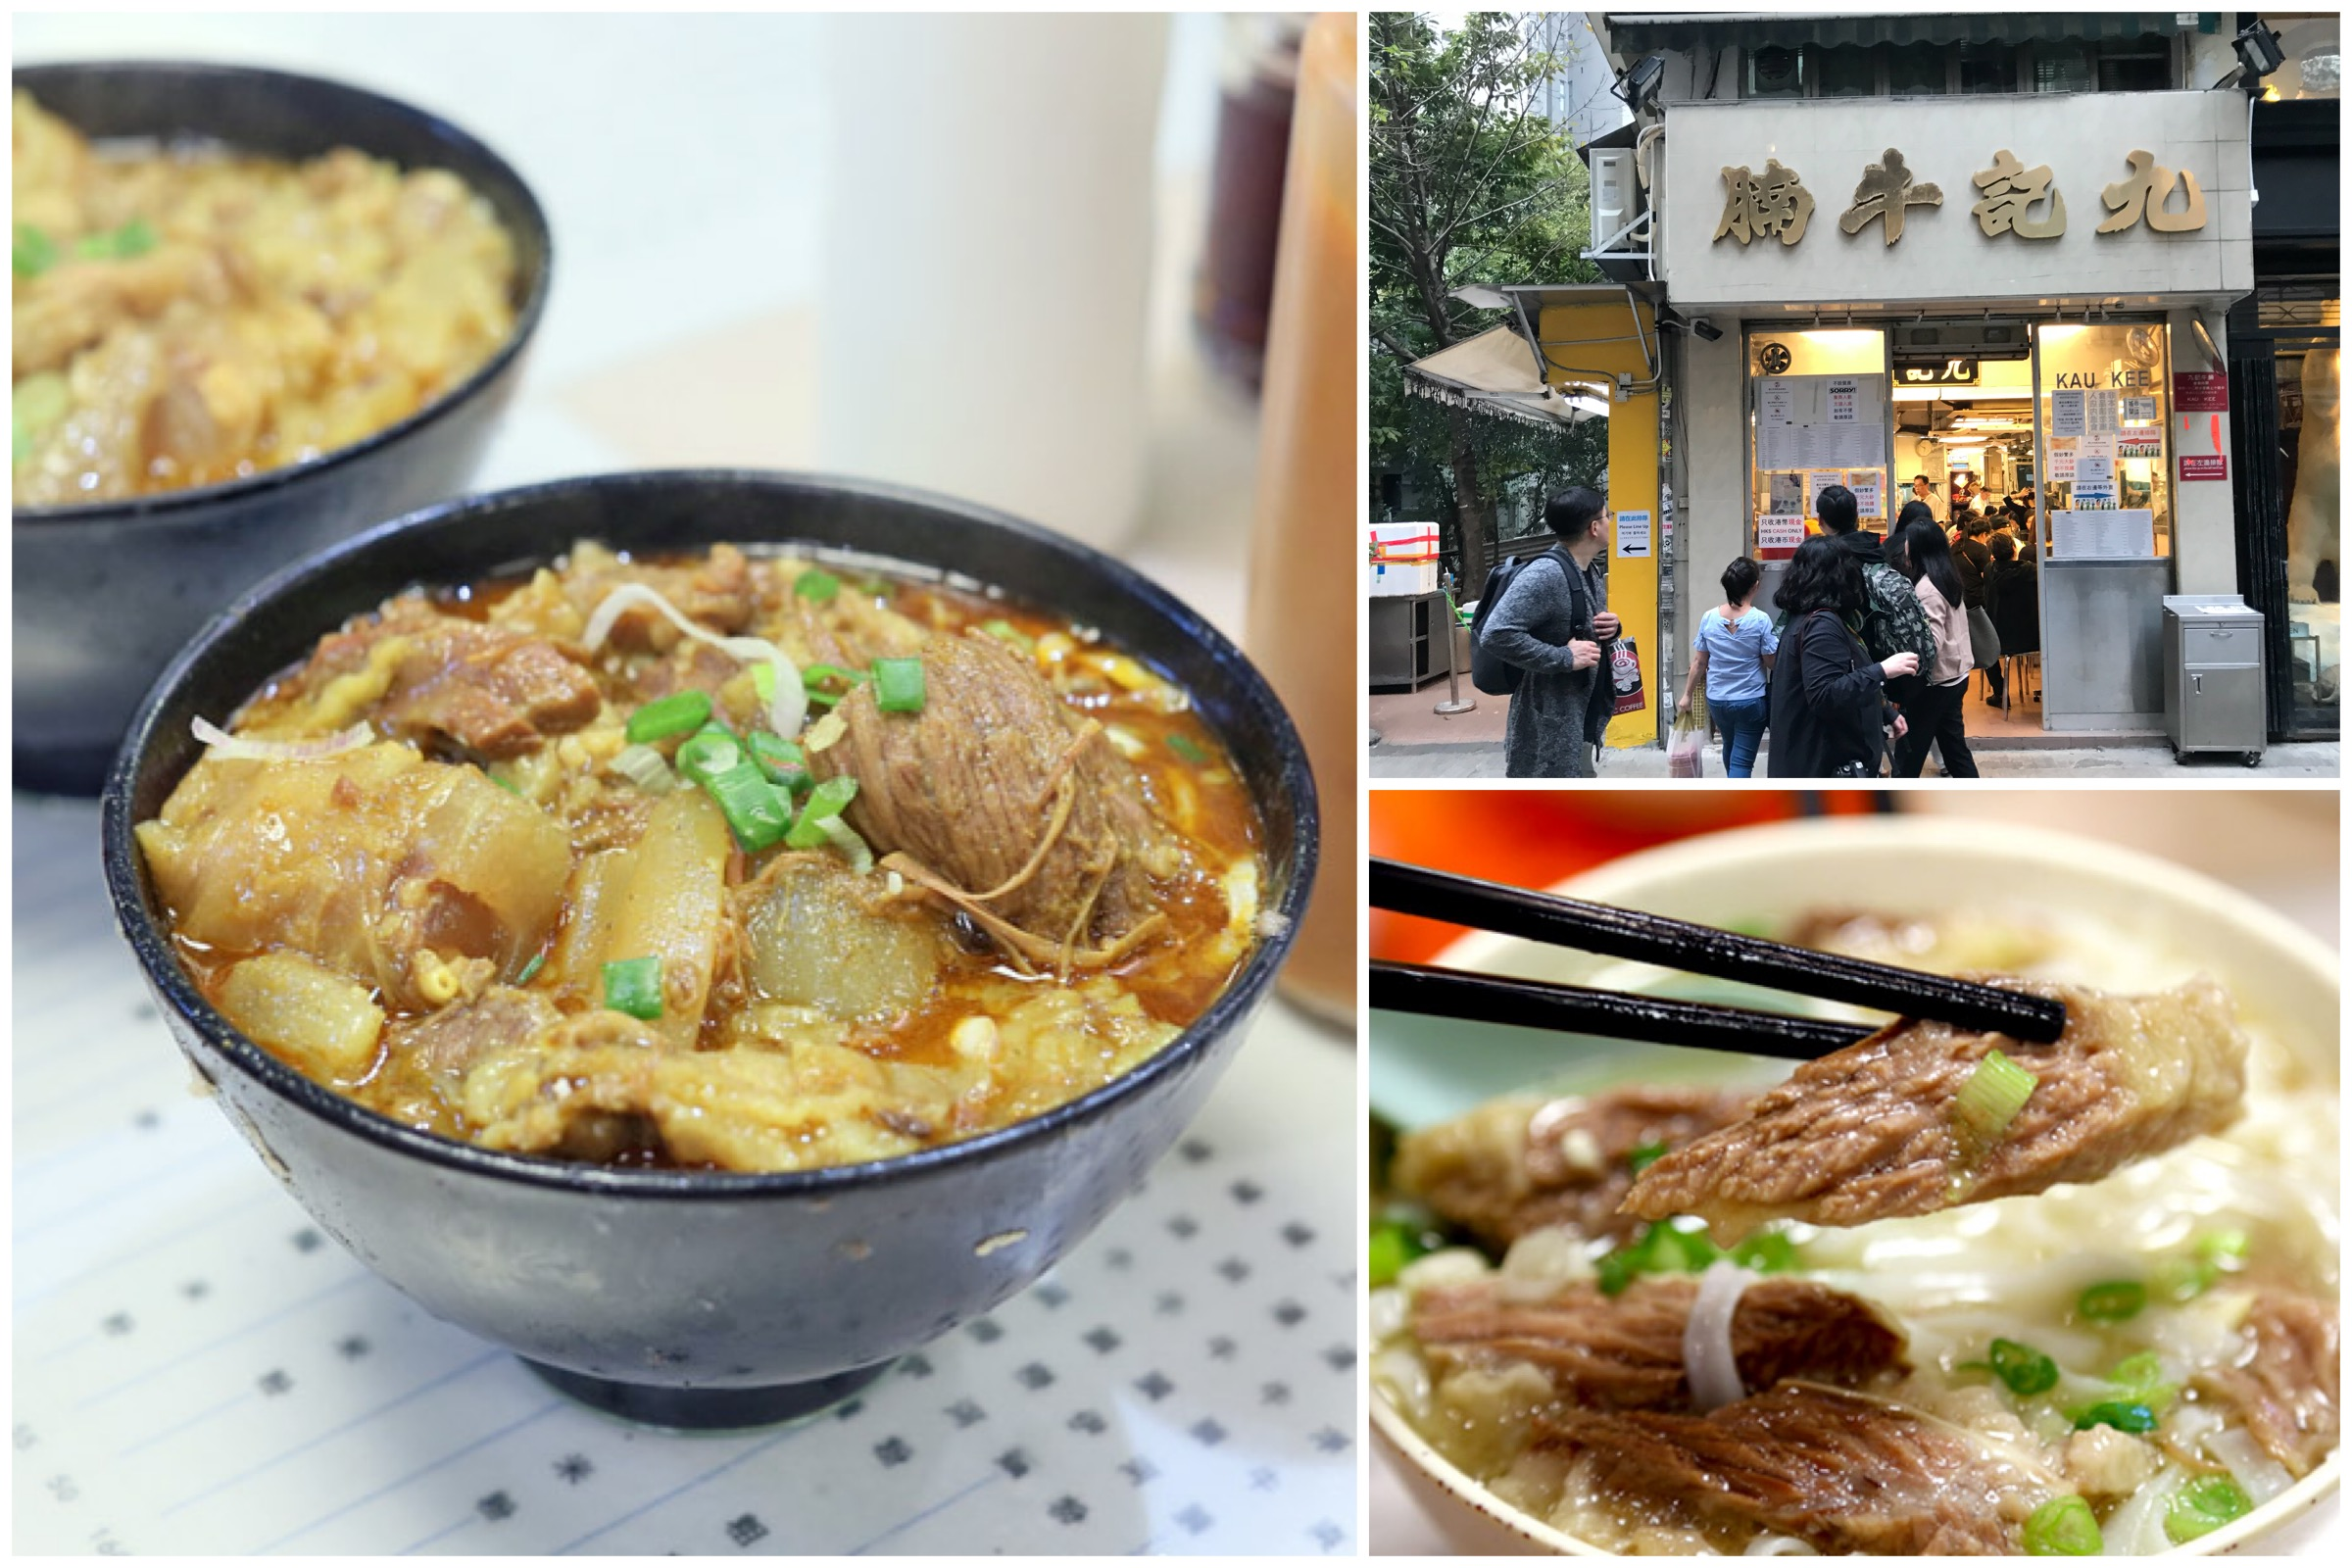 Kau Kee 九記牛腩 - Popular Beef Brisket Noodles Institution, At Hong Kong Central